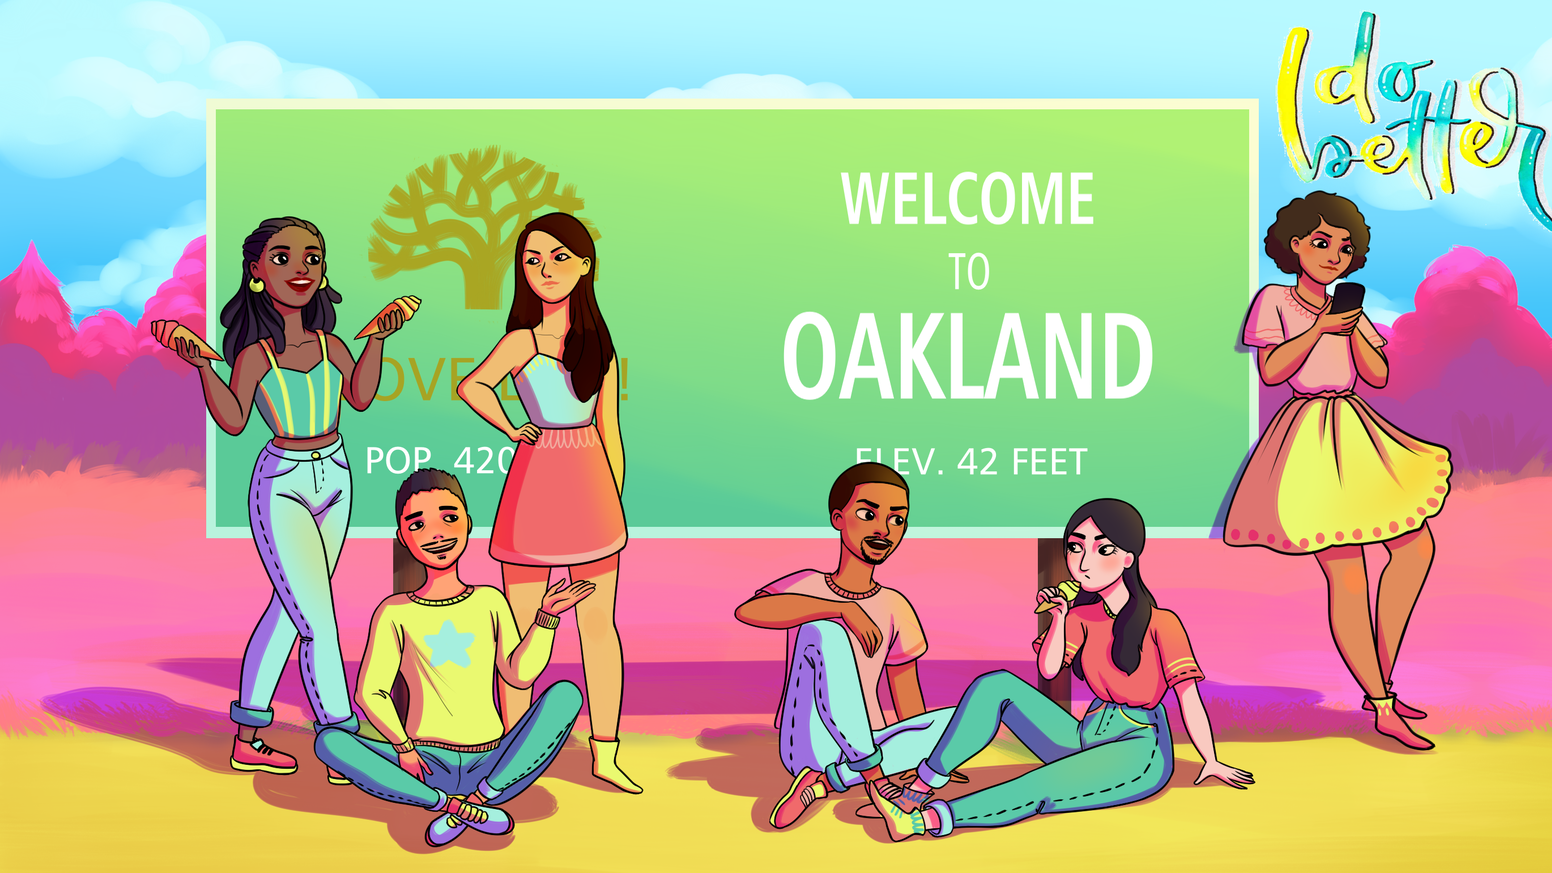 A dramedy web series about six Black and Asian friends living in Oakland who are learning to love, forgive, and grow up.